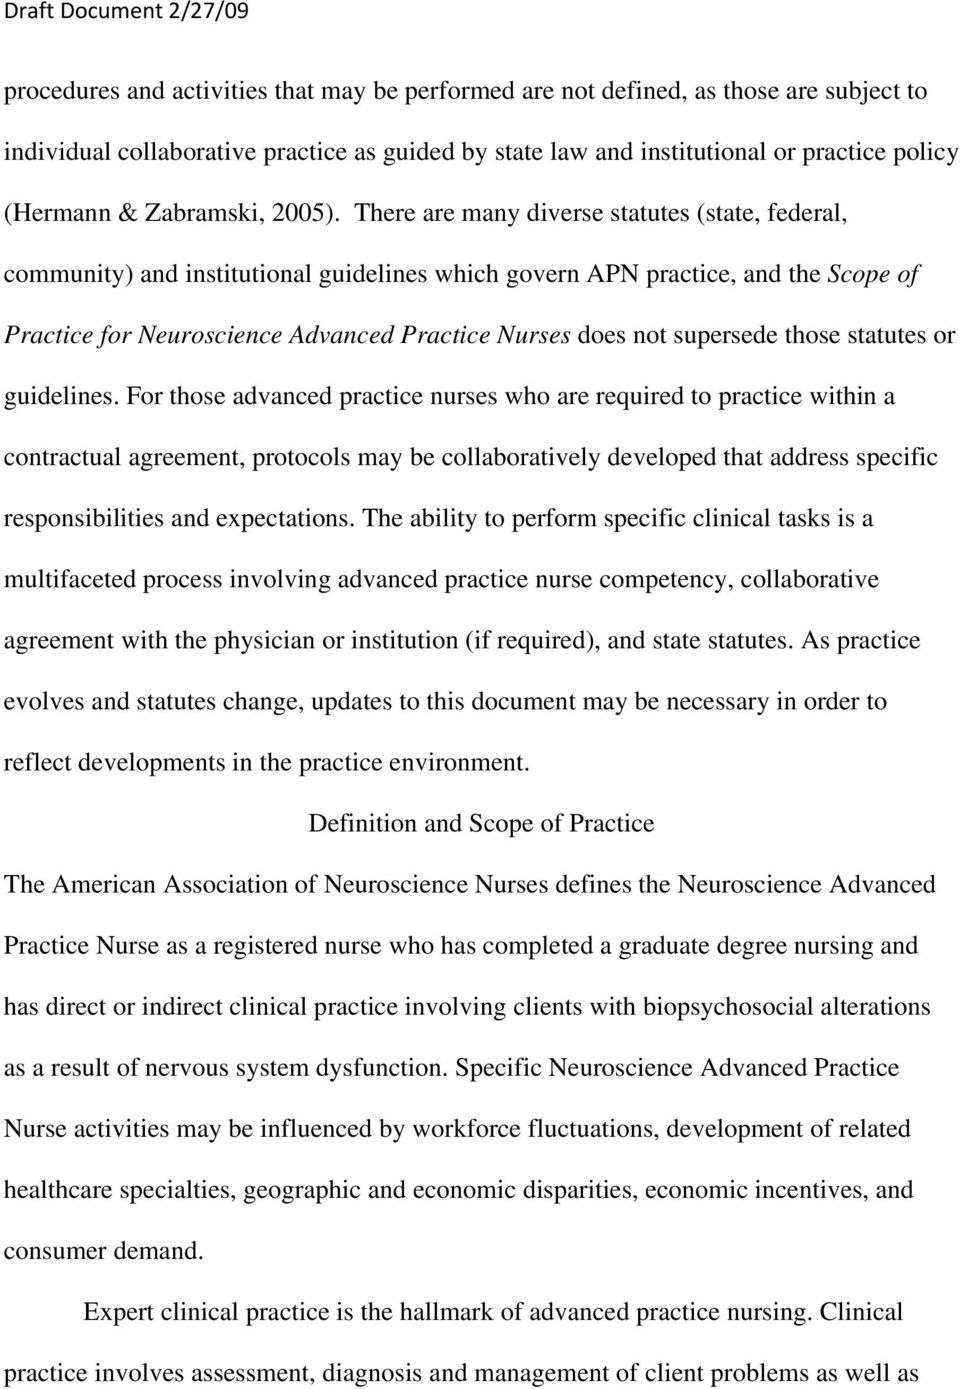 There are many diverse statutes (state, federal, community) and institutional guidelines which govern APN practice, and the Scope of Practice for Neuroscience Advanced Practice Nurses does not